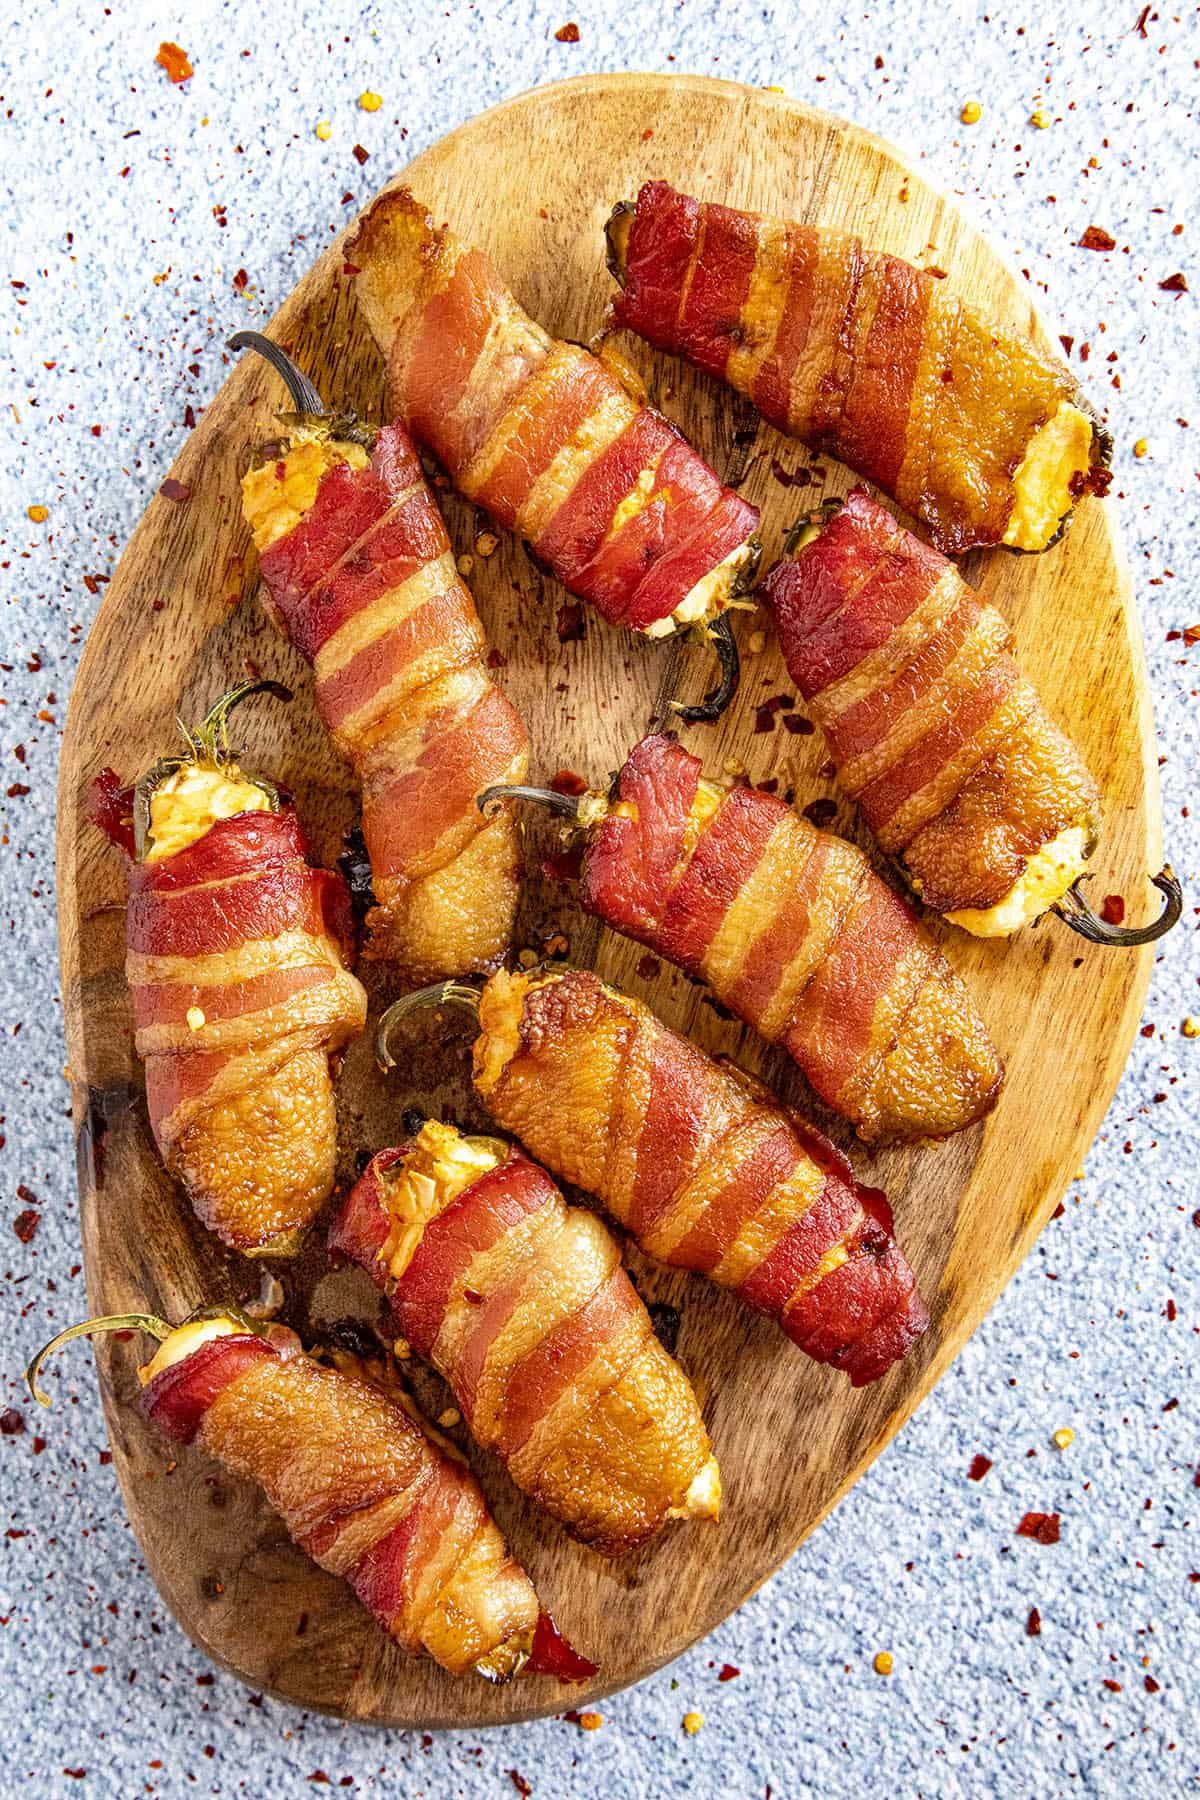 Smoked Jalapeno Poppers wrapped in bacon